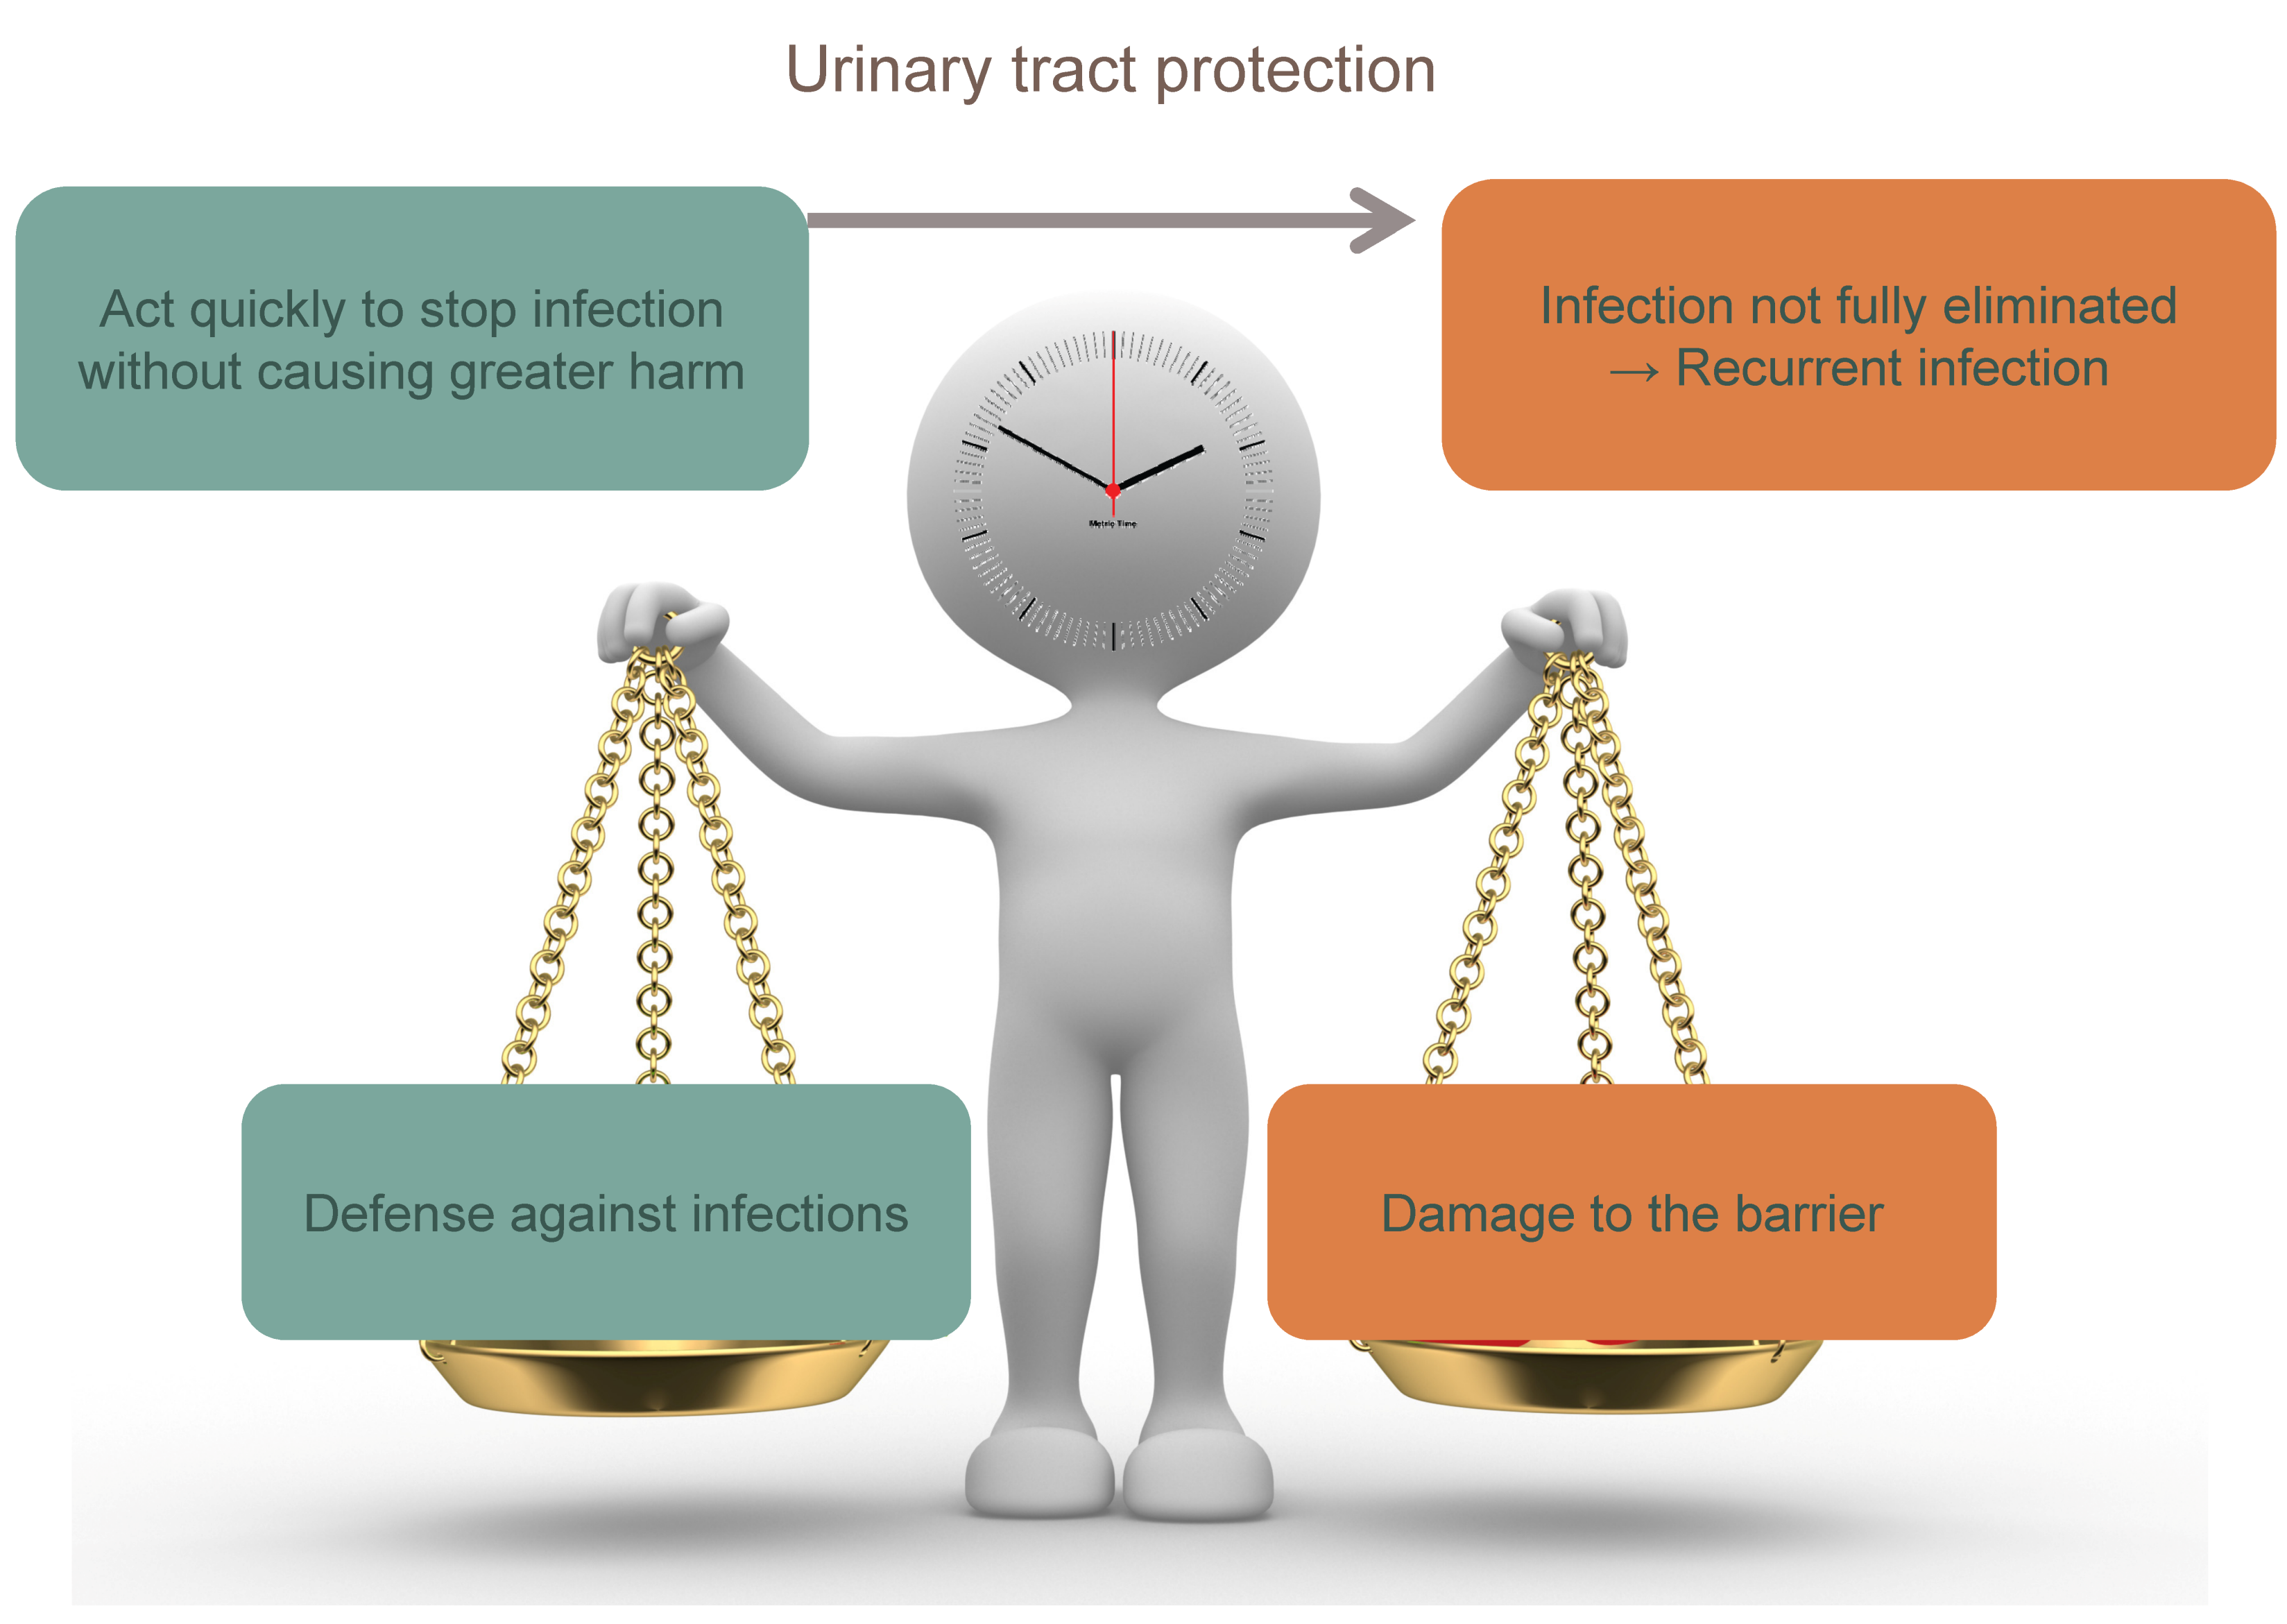 Figure 3: To obtain an adequate urinary tract protection, the immune system must act quickly to stop uropathogen invasion without causing greater harm. If this response is curtailed too soon in order to prevent more damage, infection could not be fully eliminated leading to recurrent infections.